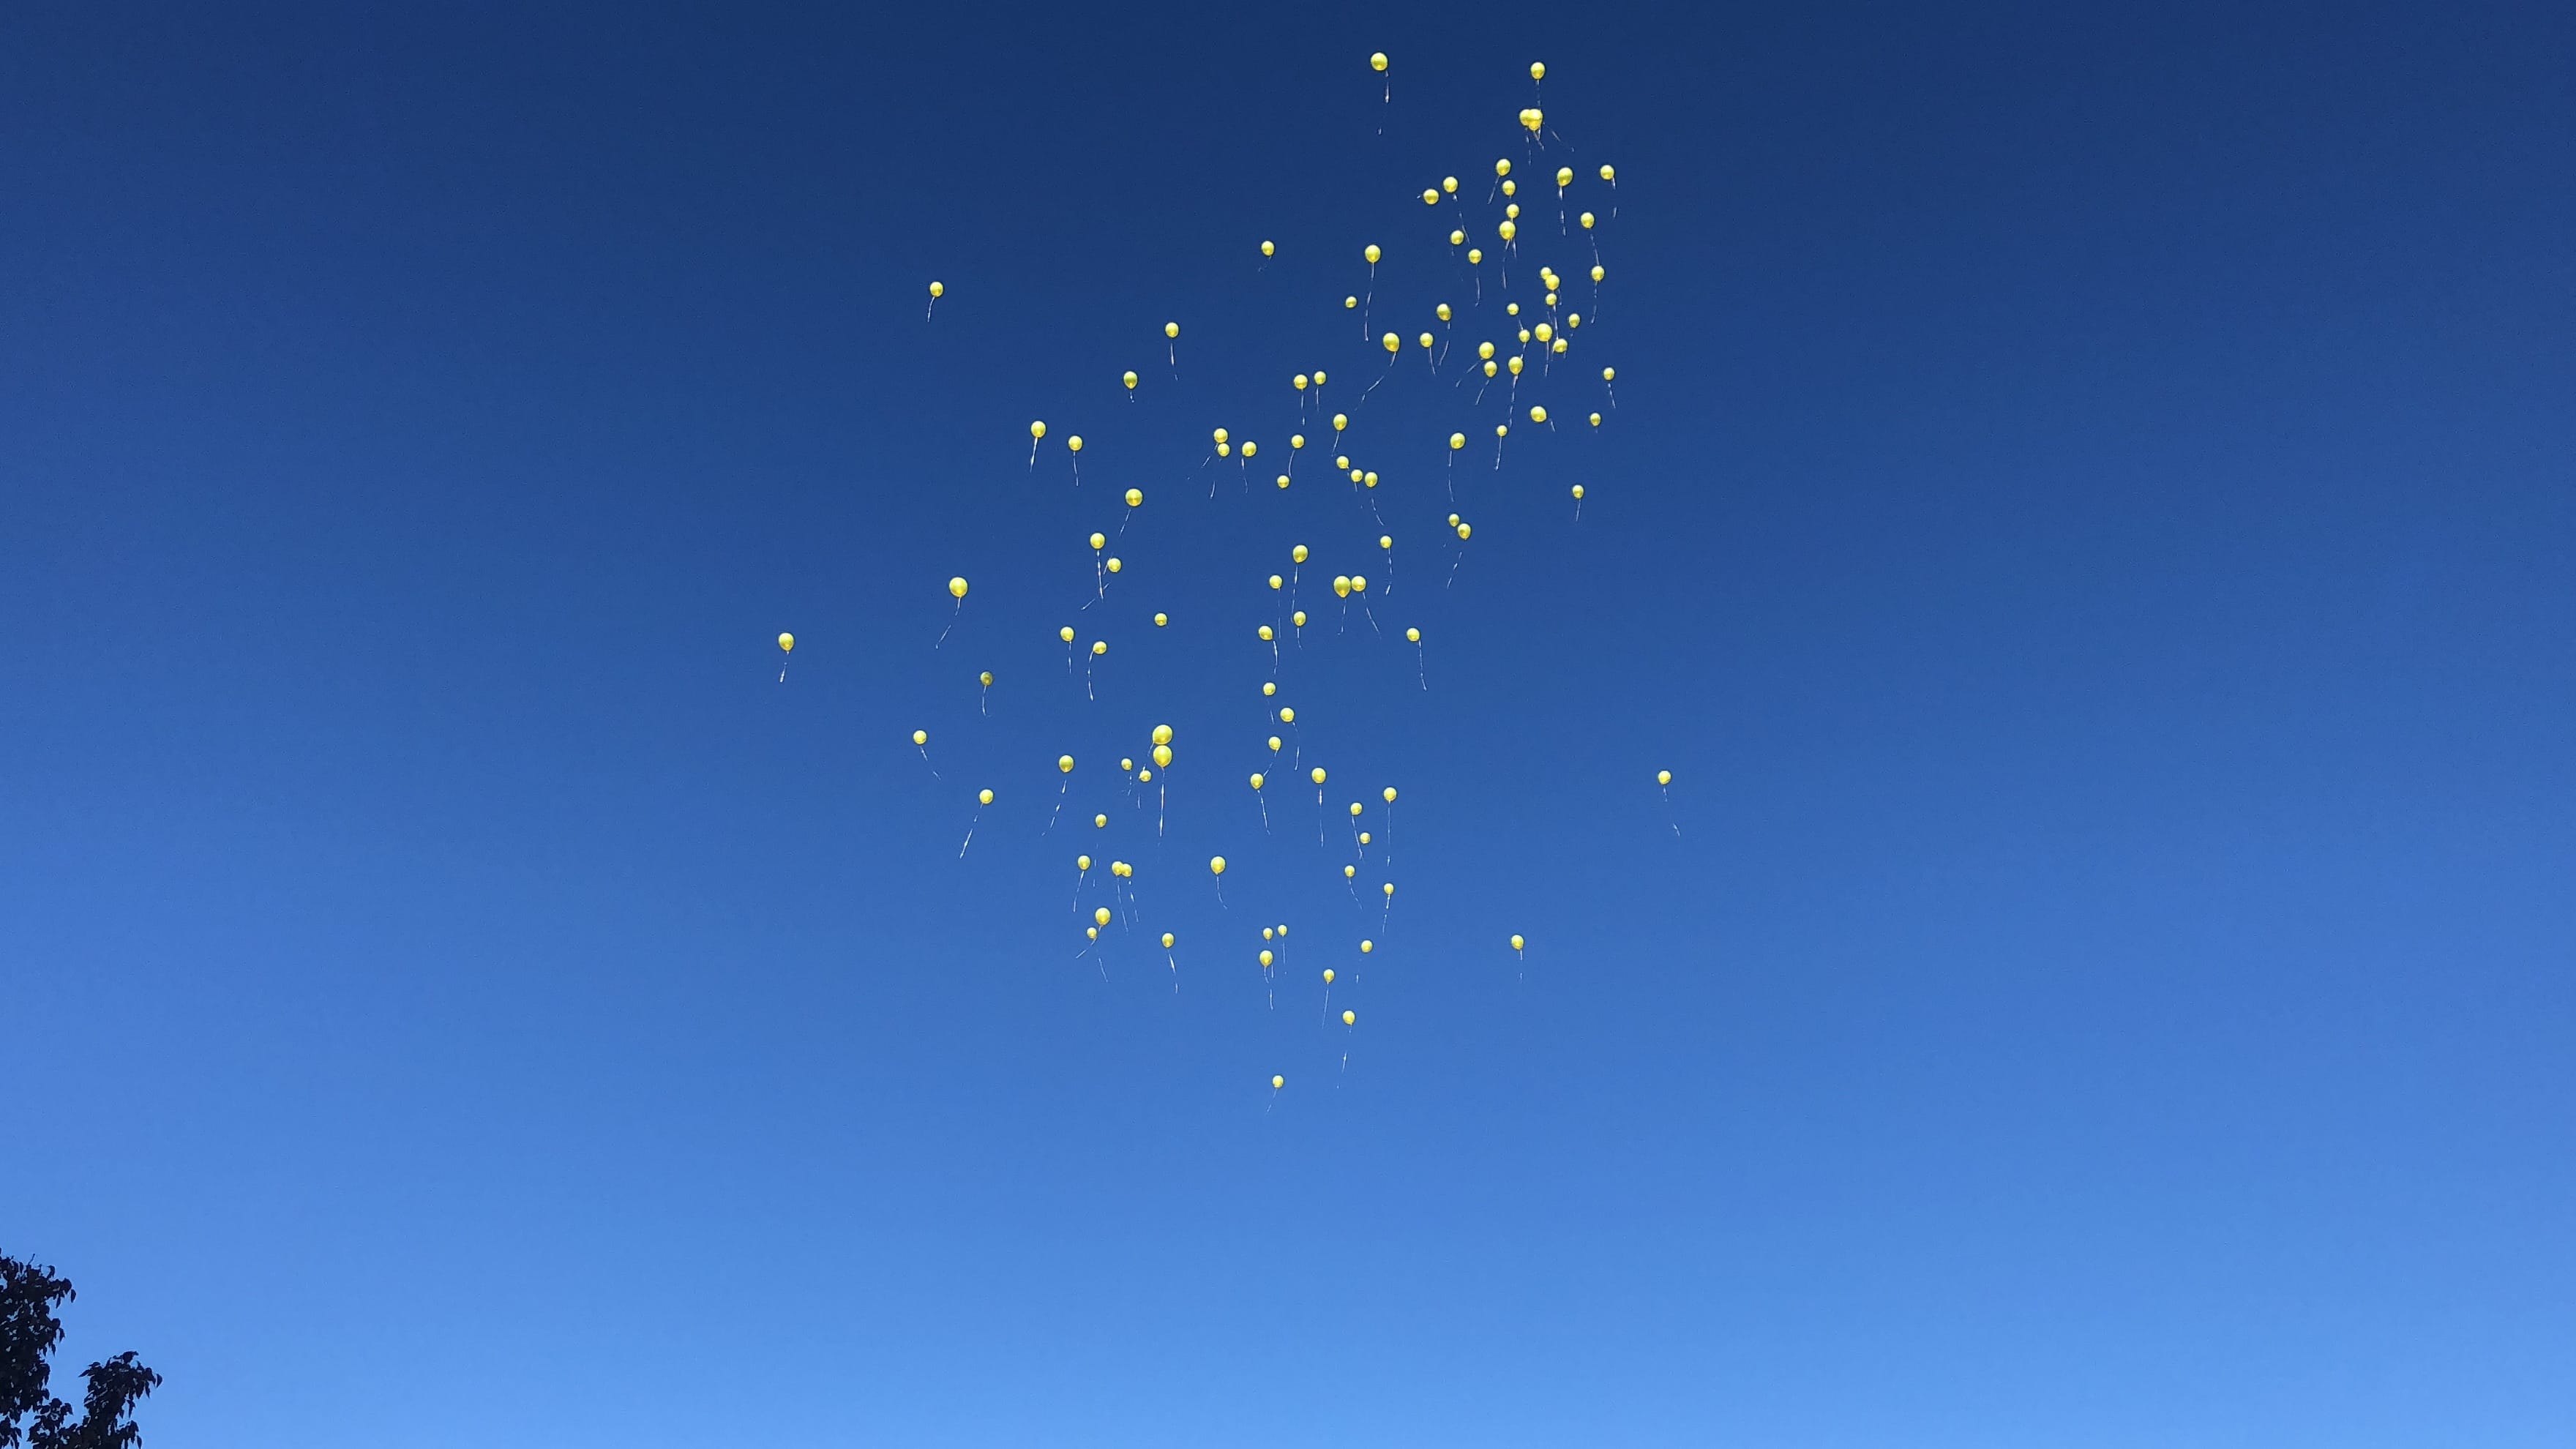 The Color of Heartbreak is Yellow: On the Loss of a Friend - Balloon Releaes